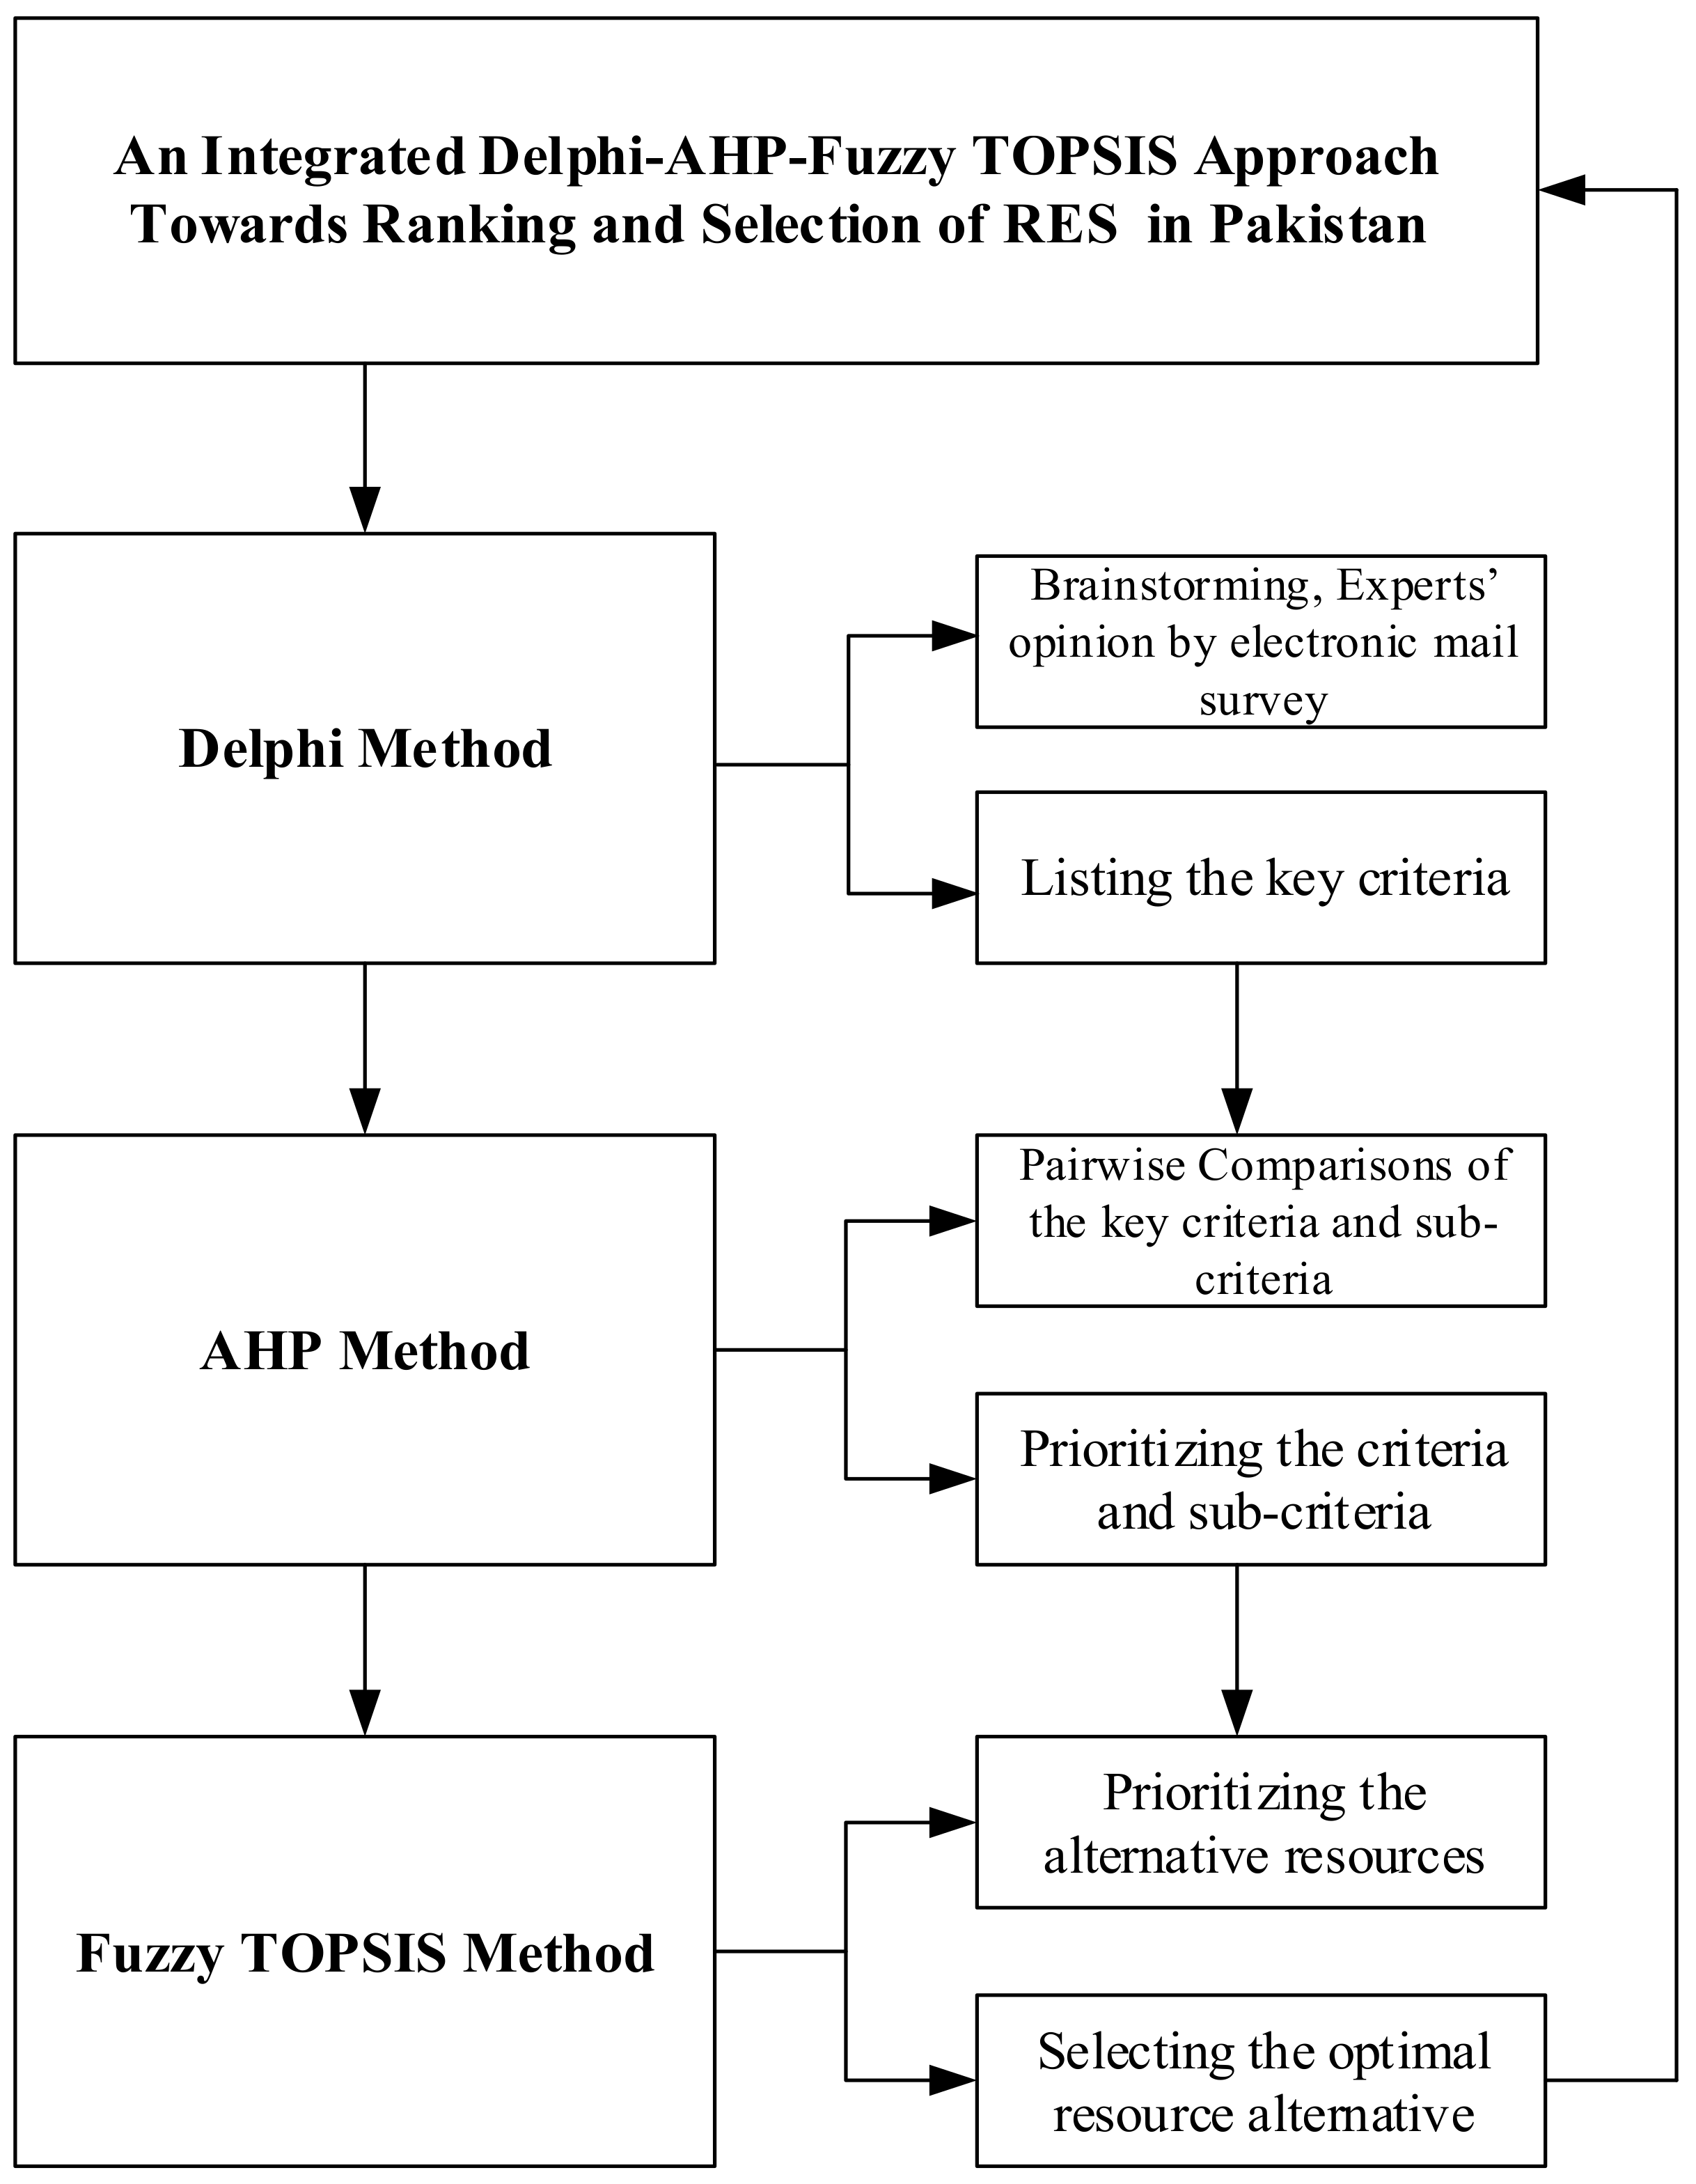 Processes | Free Full-Text | An Integrated Delphi-AHP and Fuzzy